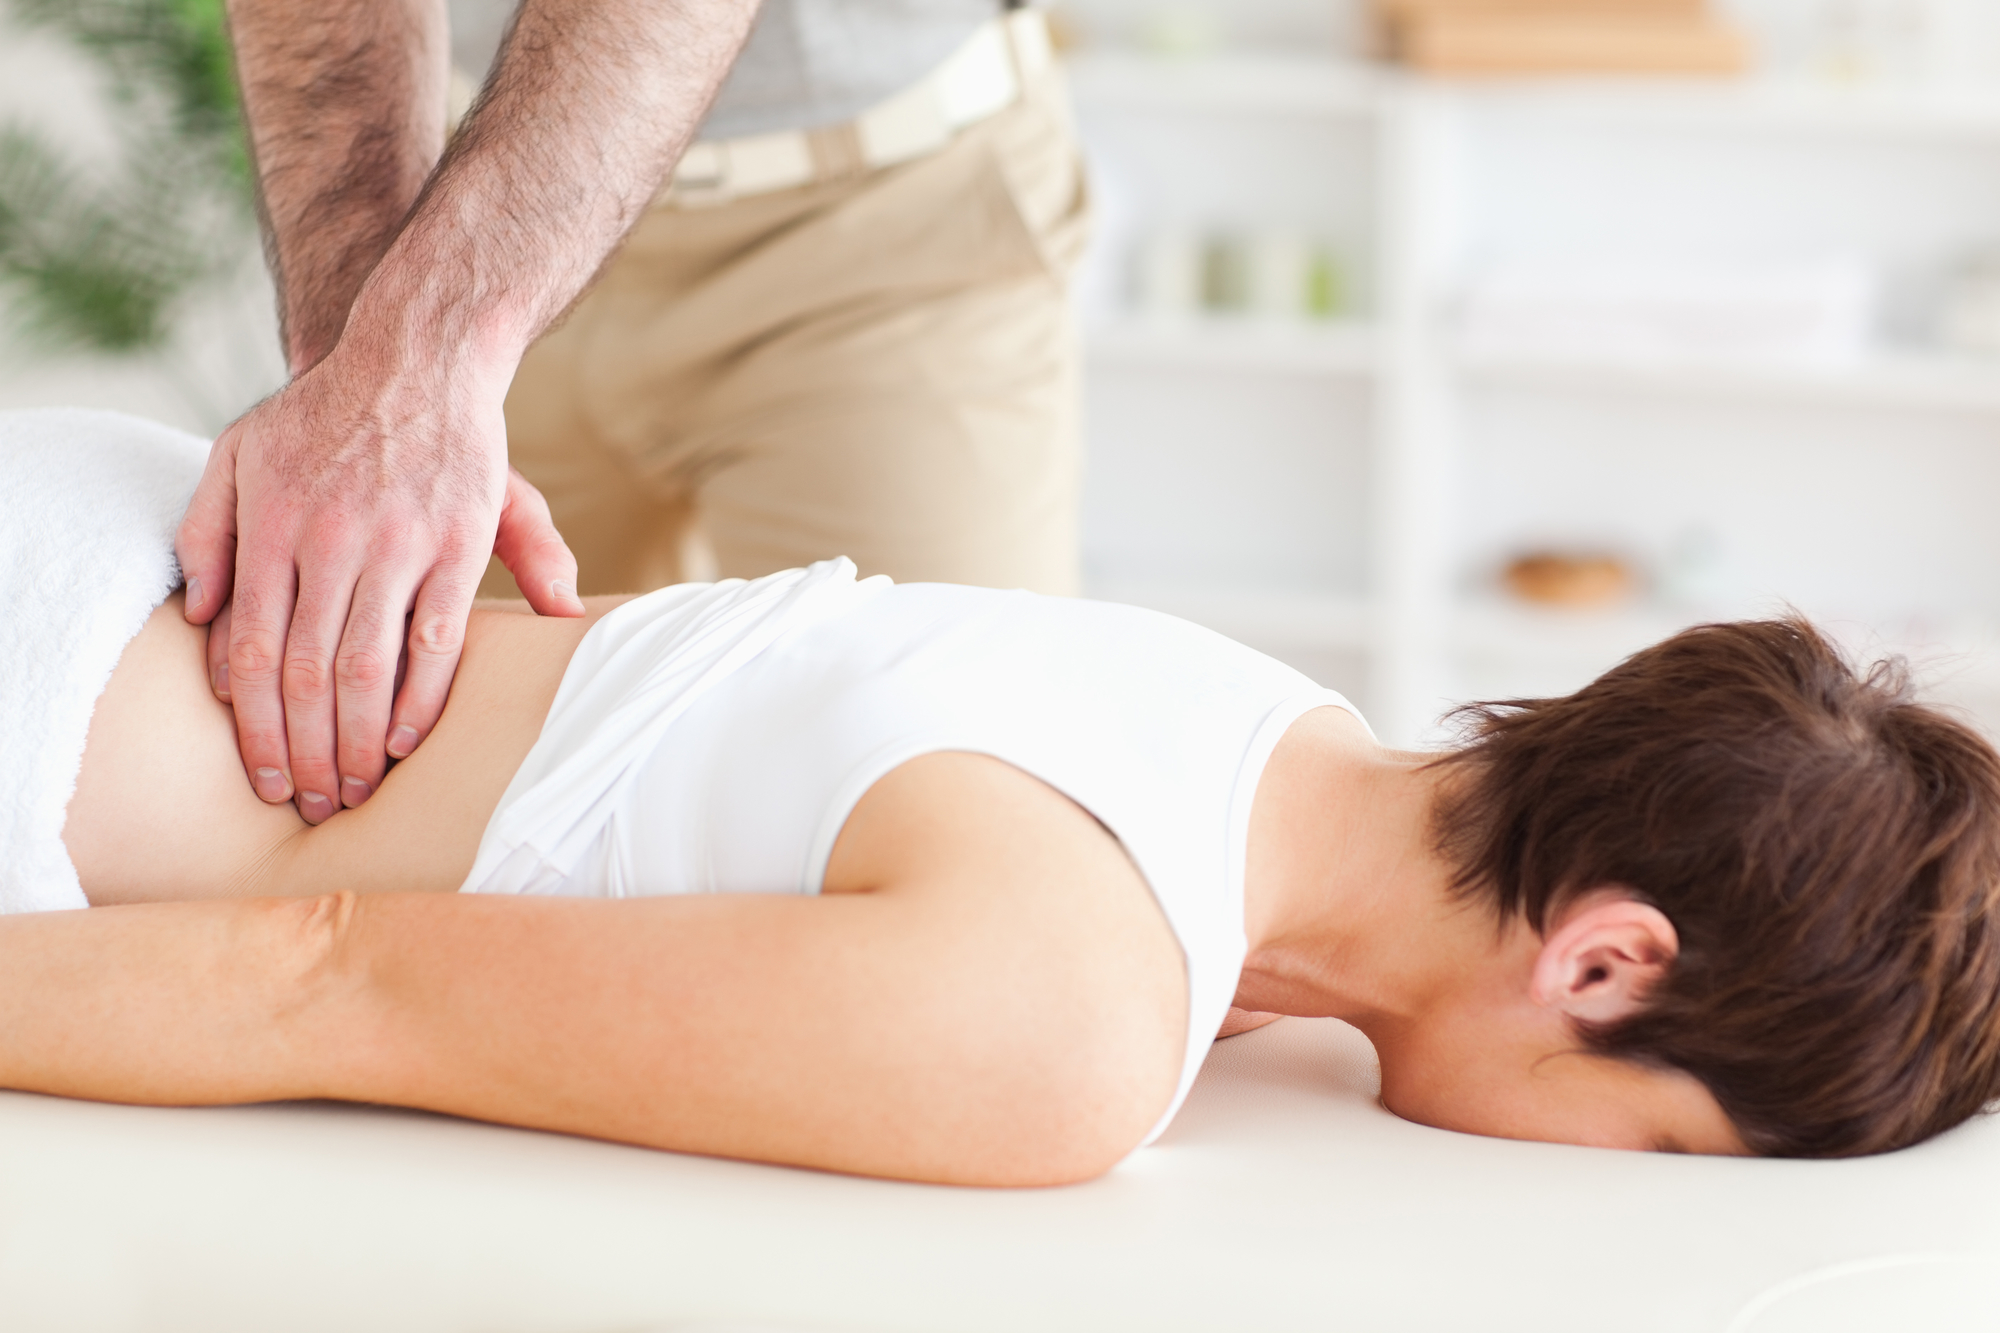 Health Benefits of Chiropractic Adjustments